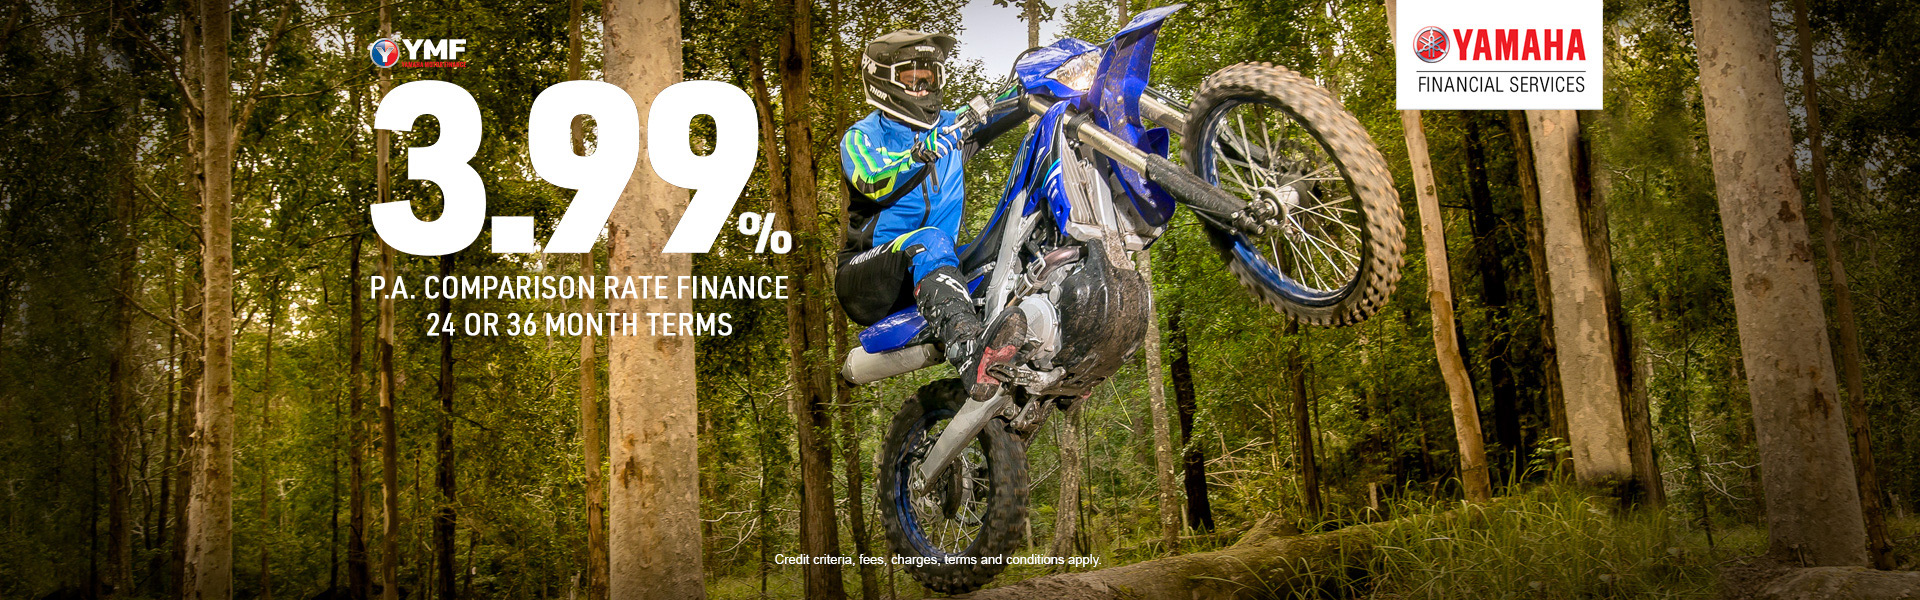 Born to Ride Finance Offer